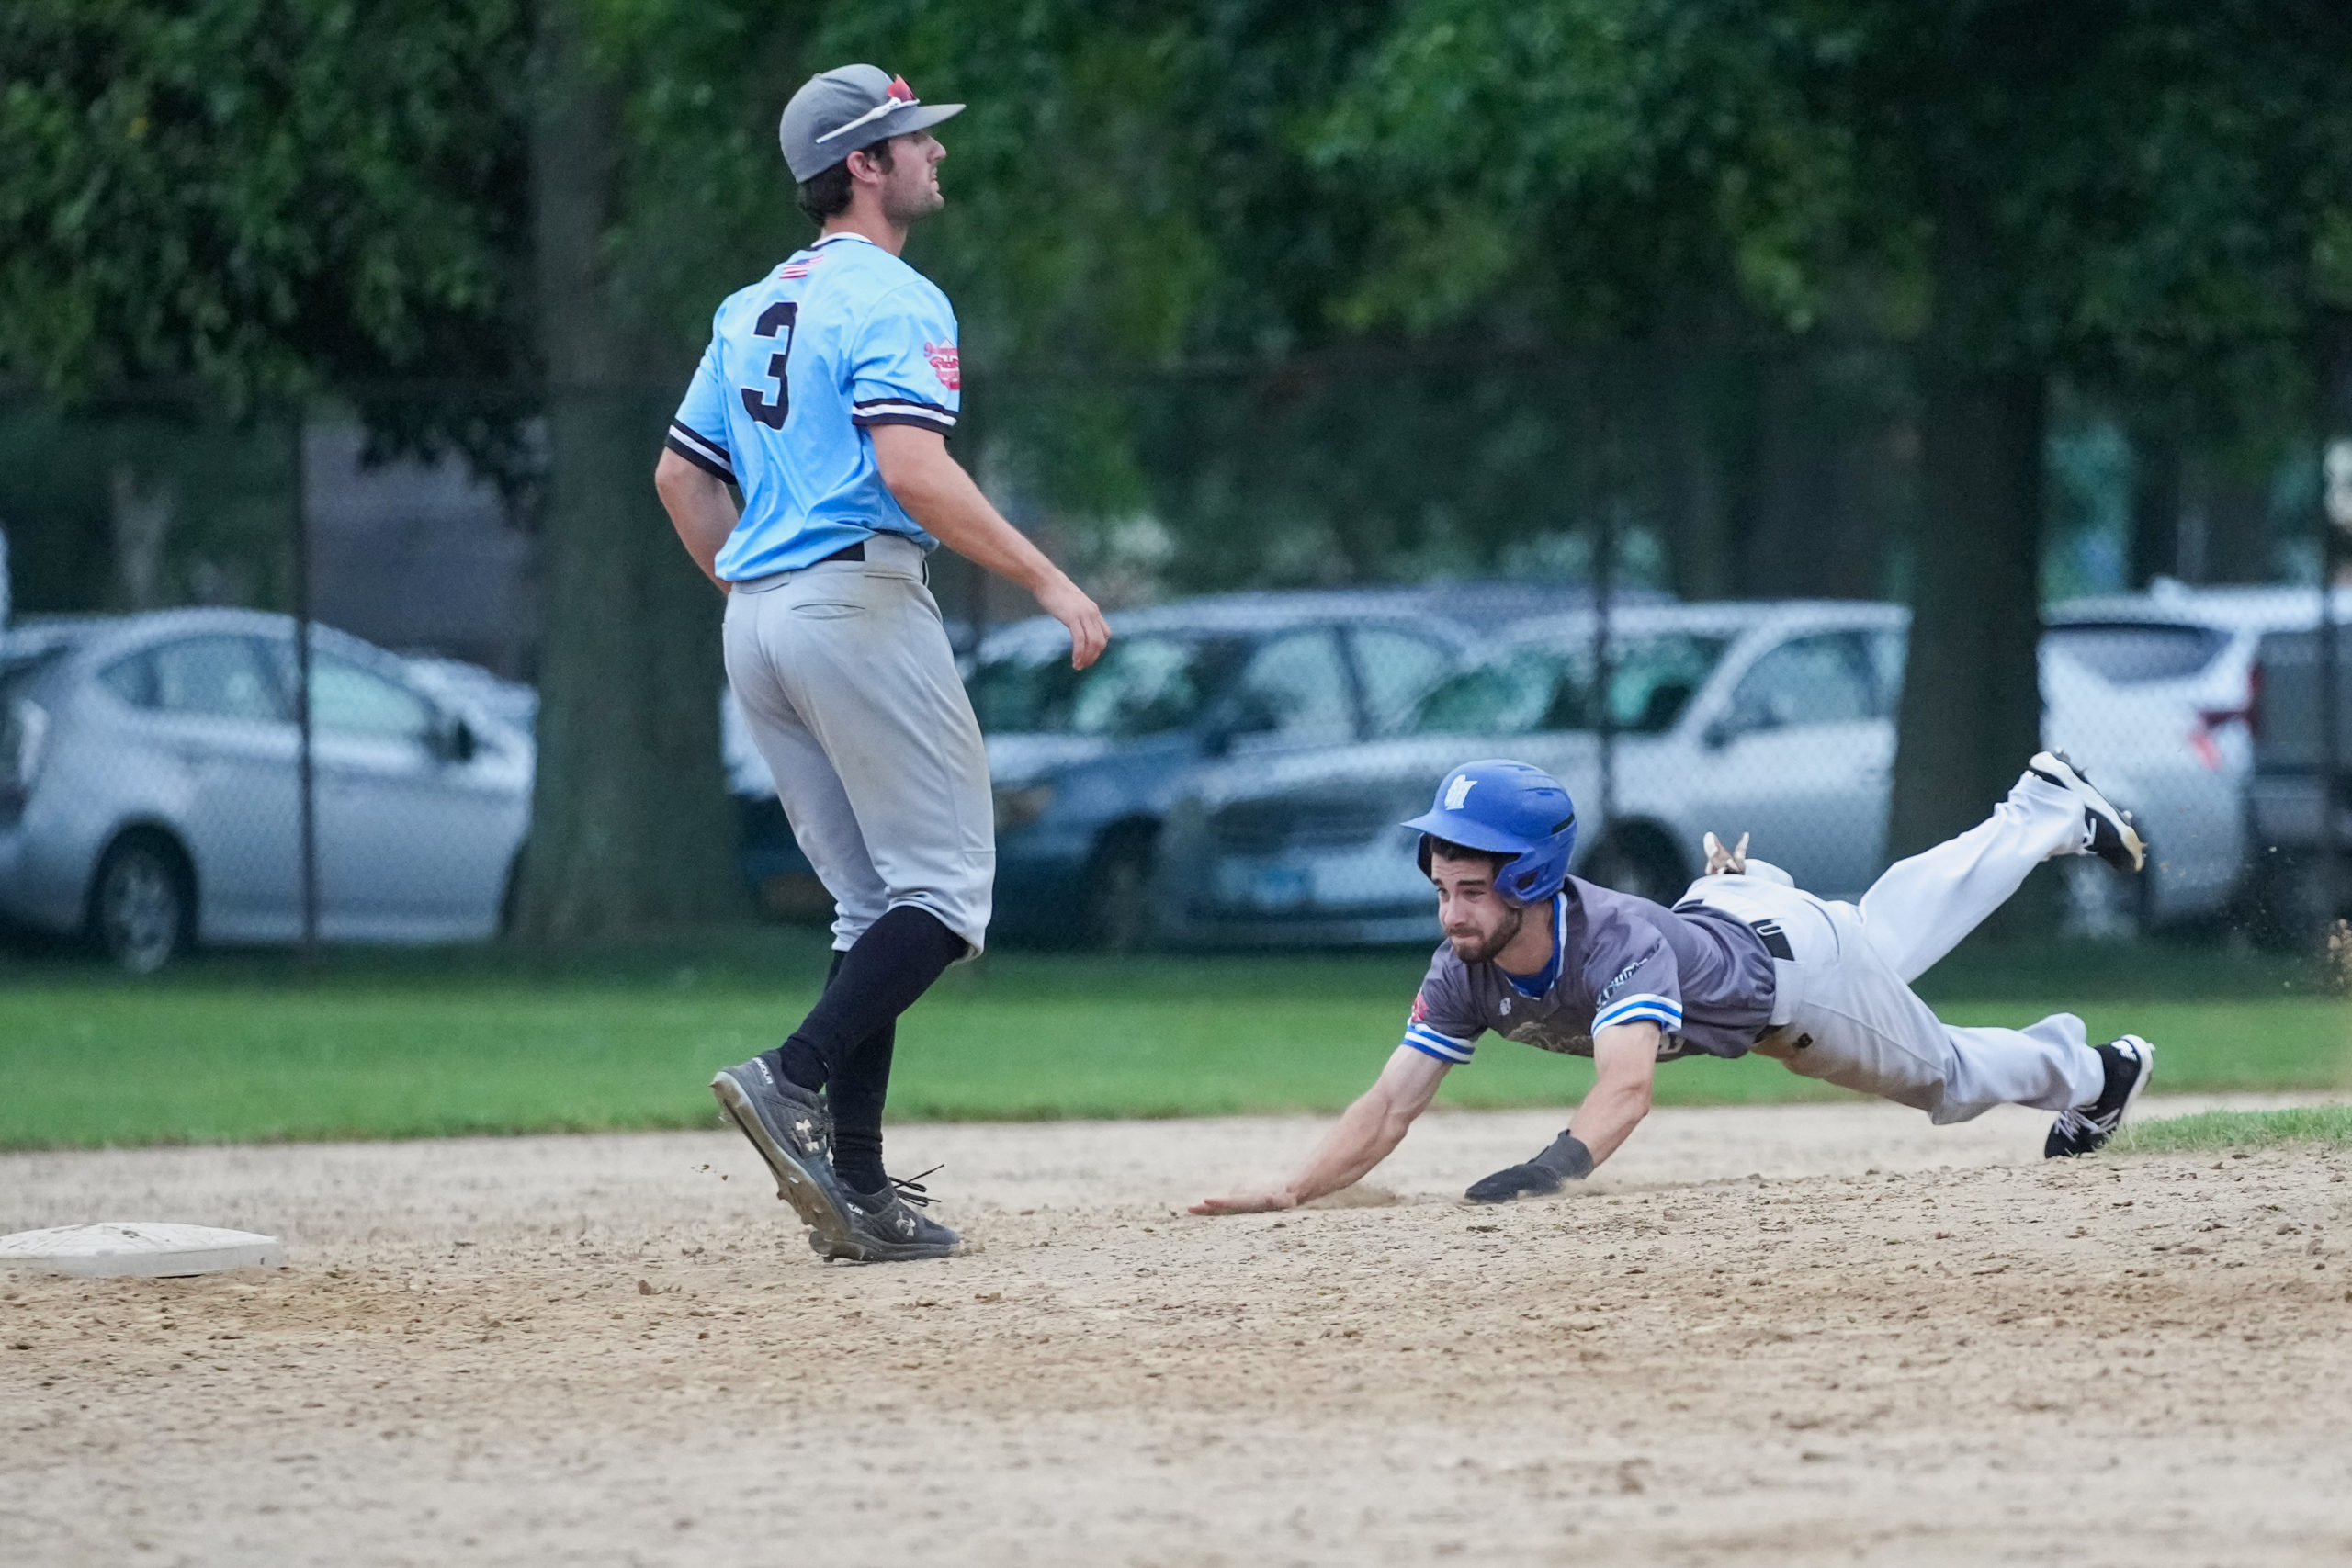 Breaker Will Gale (Seton Hall) slides head first into second base during Sunday's game.